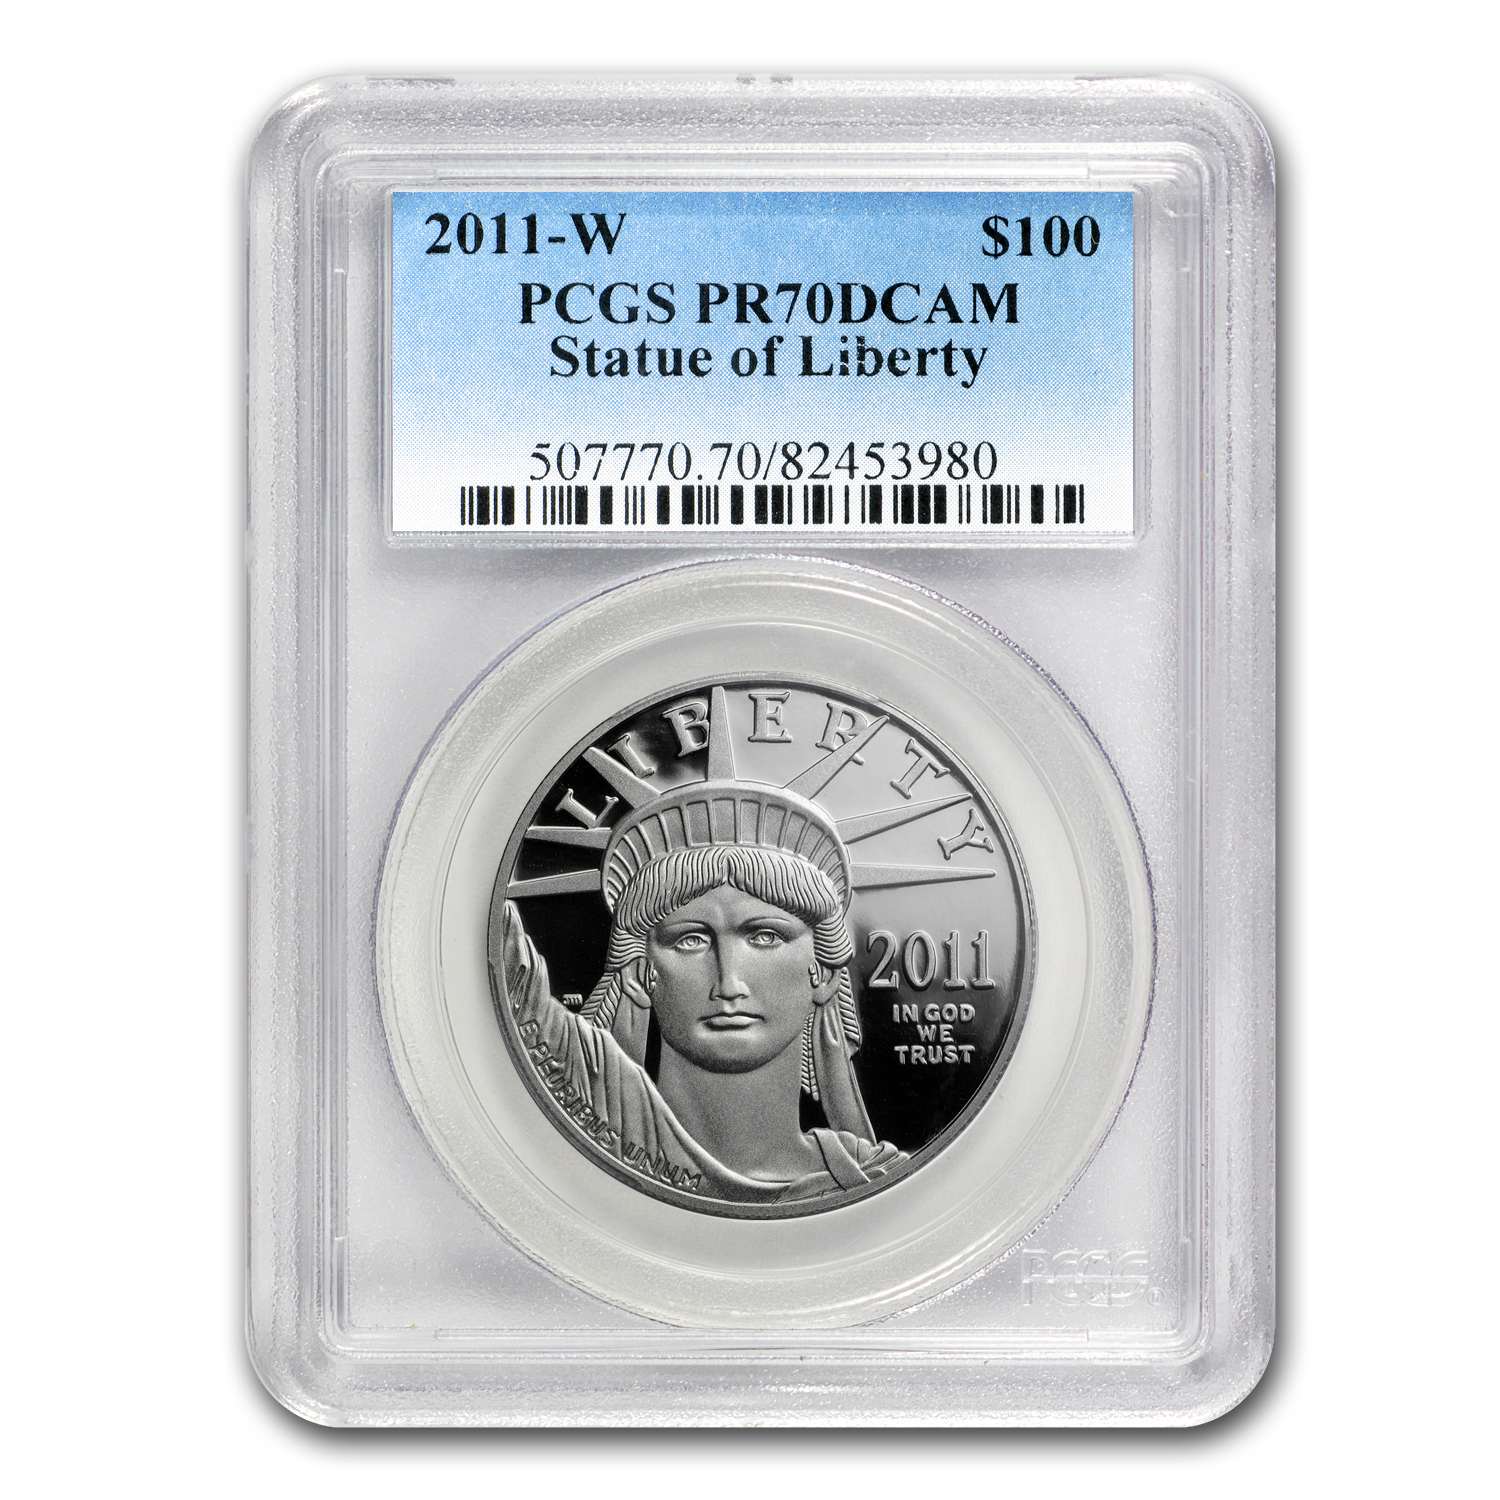 2011-W 1 oz Proof Platinum American Eagle PR-70 PCGS